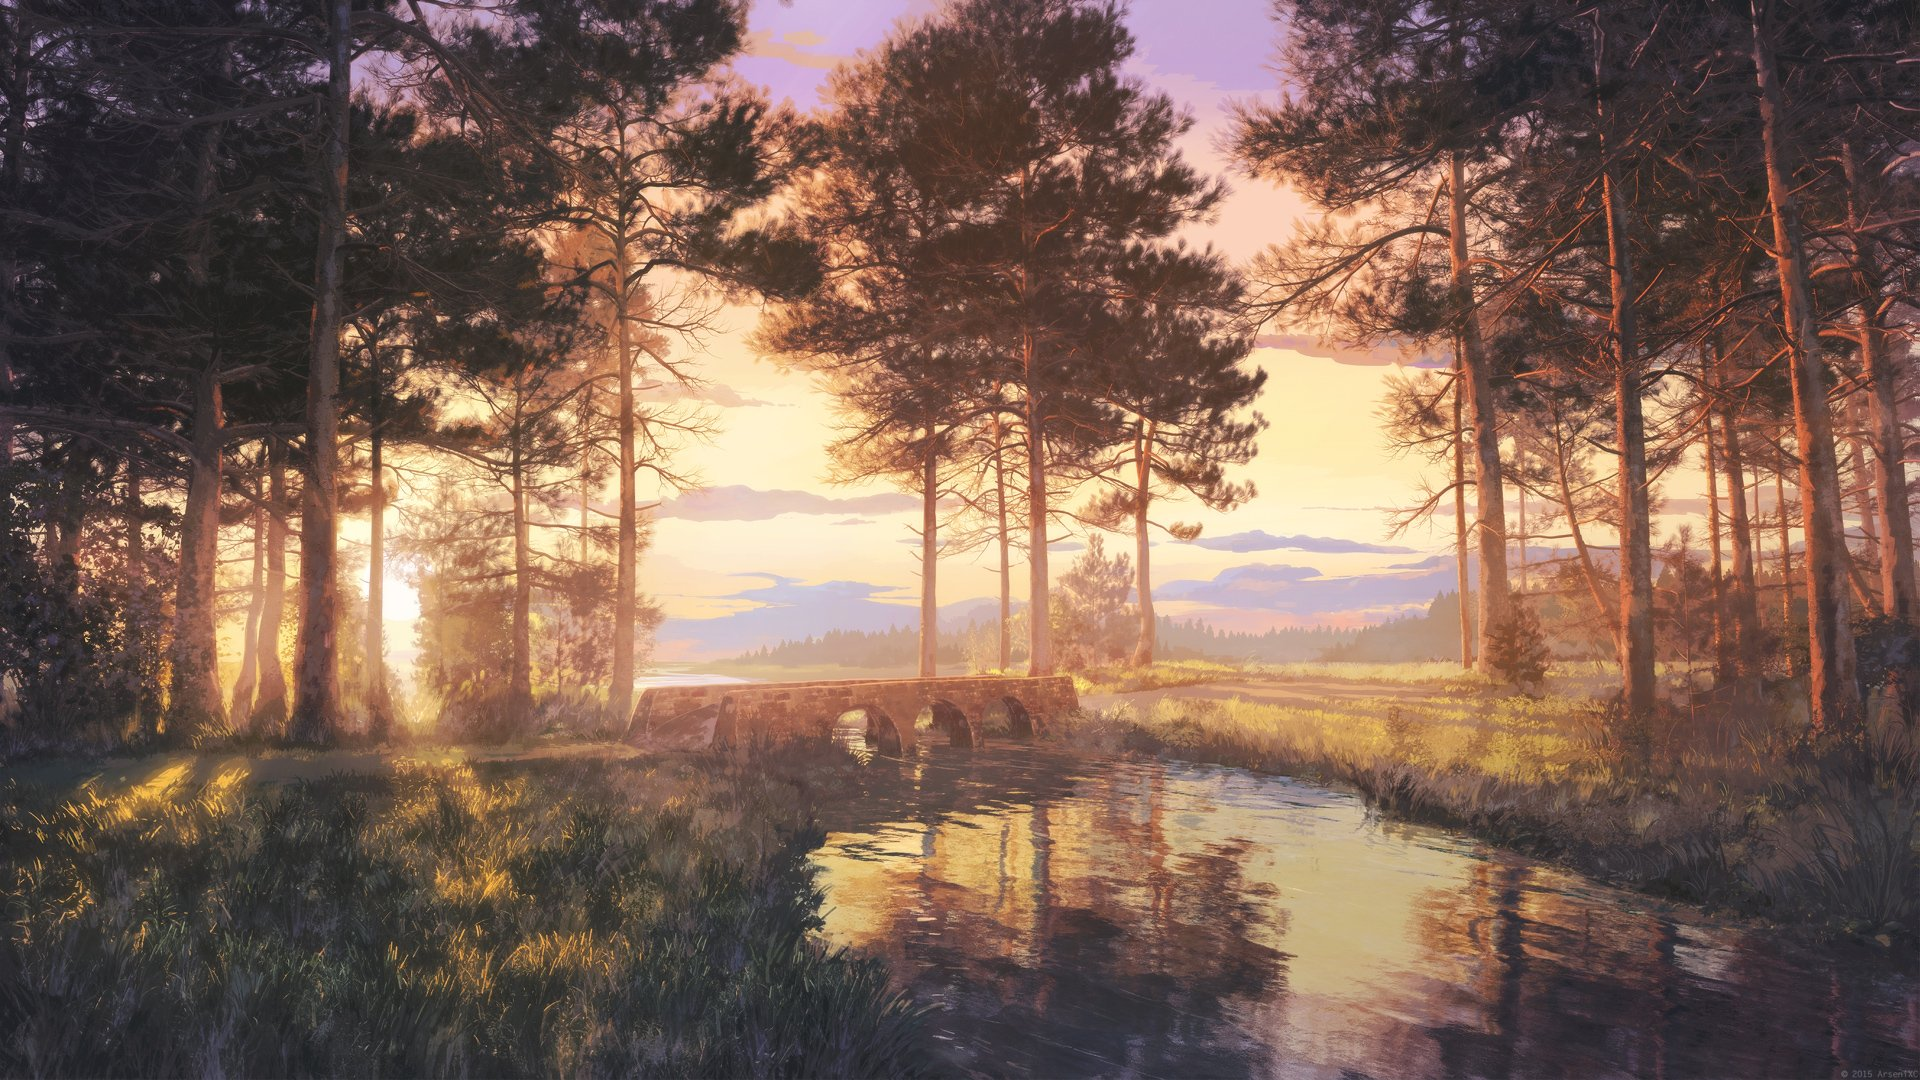 Anime beautiful landscape nature scan forest sunlight lake ...